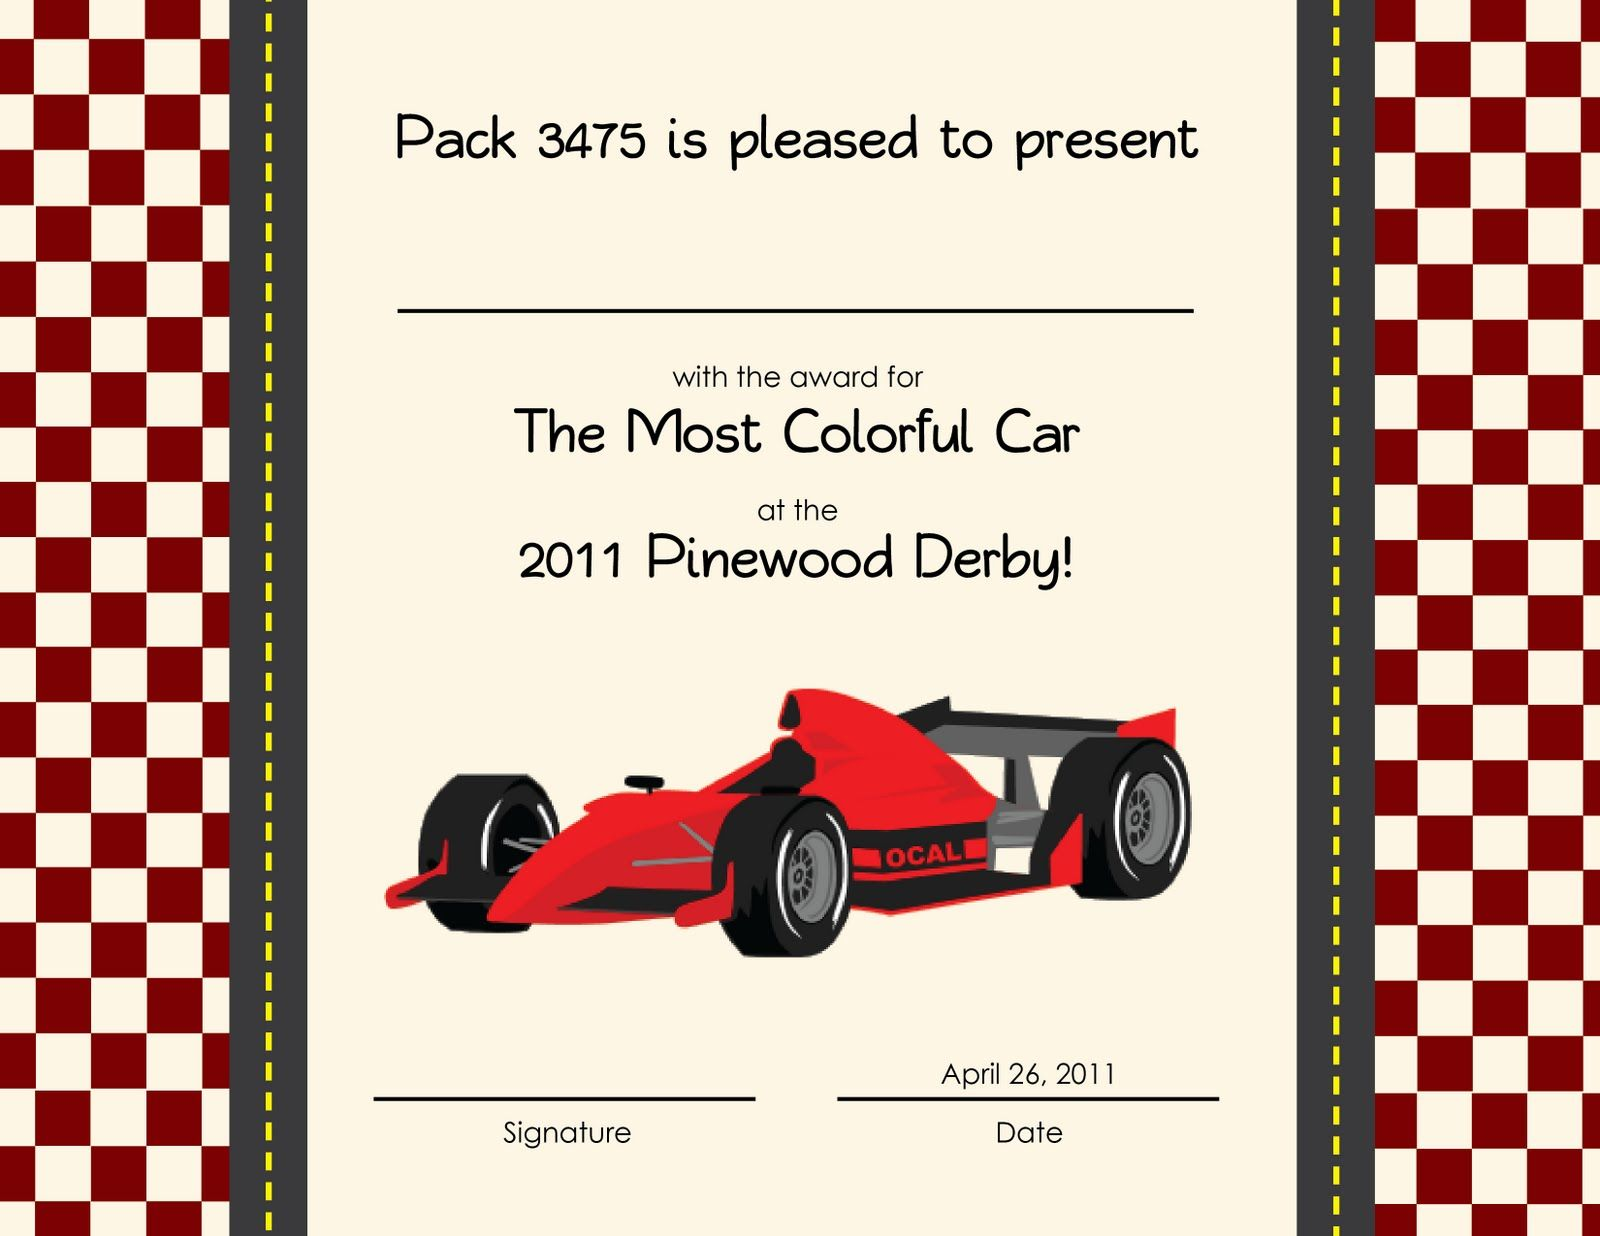 pinewood derby award ideas - Pinewood Derby Certificate Templates